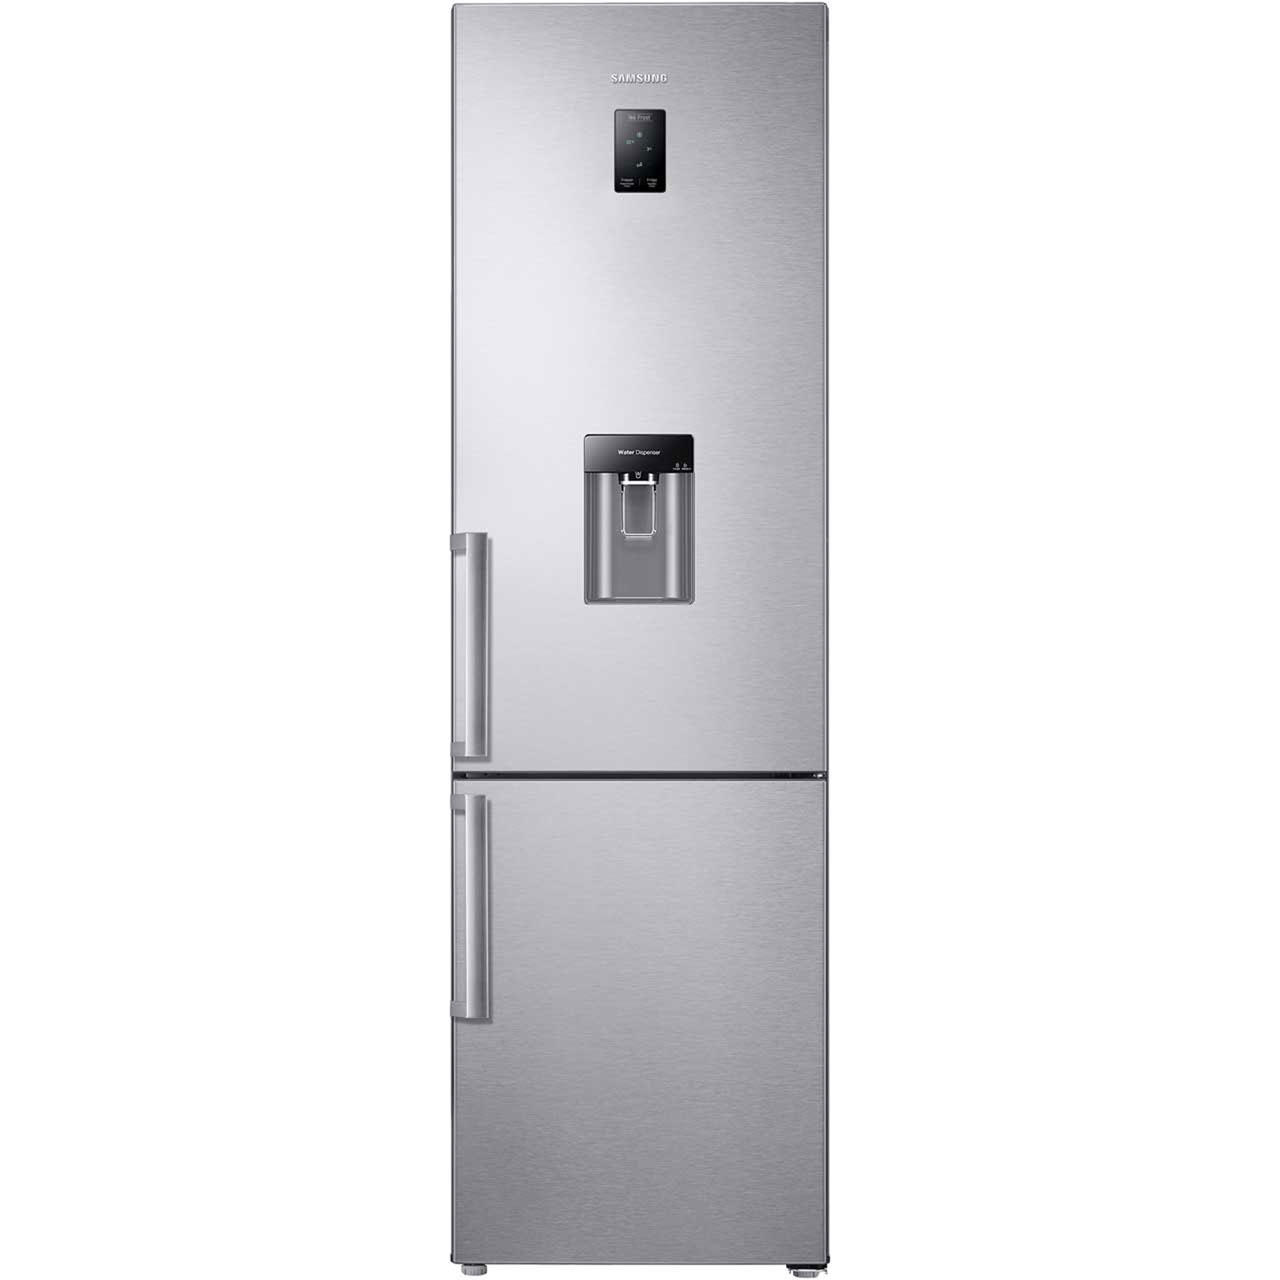 Samsung RB37J5920SL Free Standing Fridge Freezer Frost Free in Stainless Steel